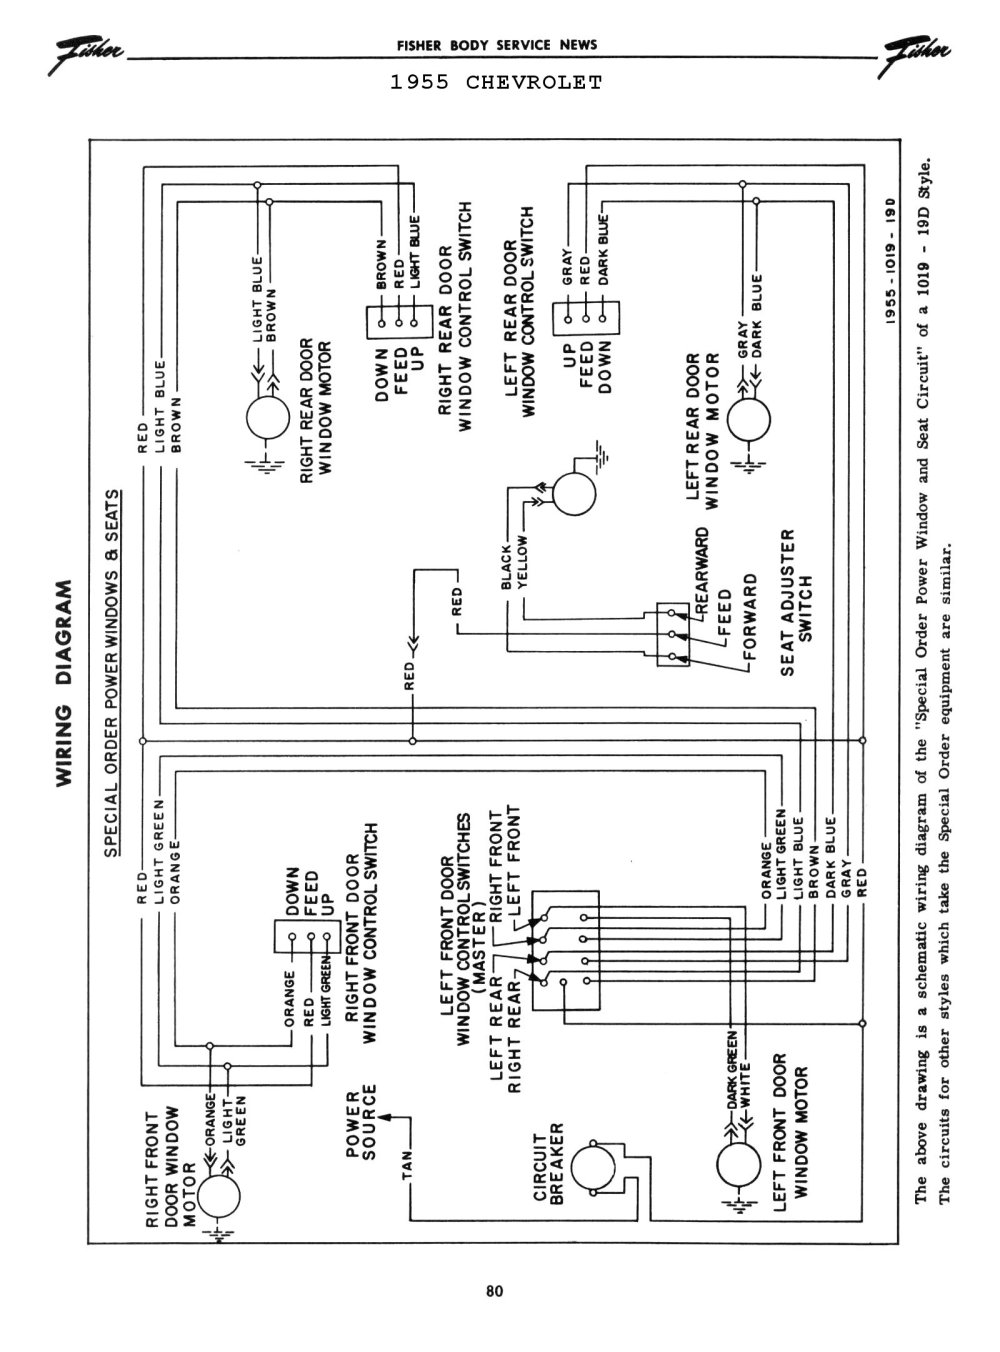 medium resolution of dome light wiring diagram 1955 chevy bel air 1954 mercury 1957 chevy fuse box wiring diagram